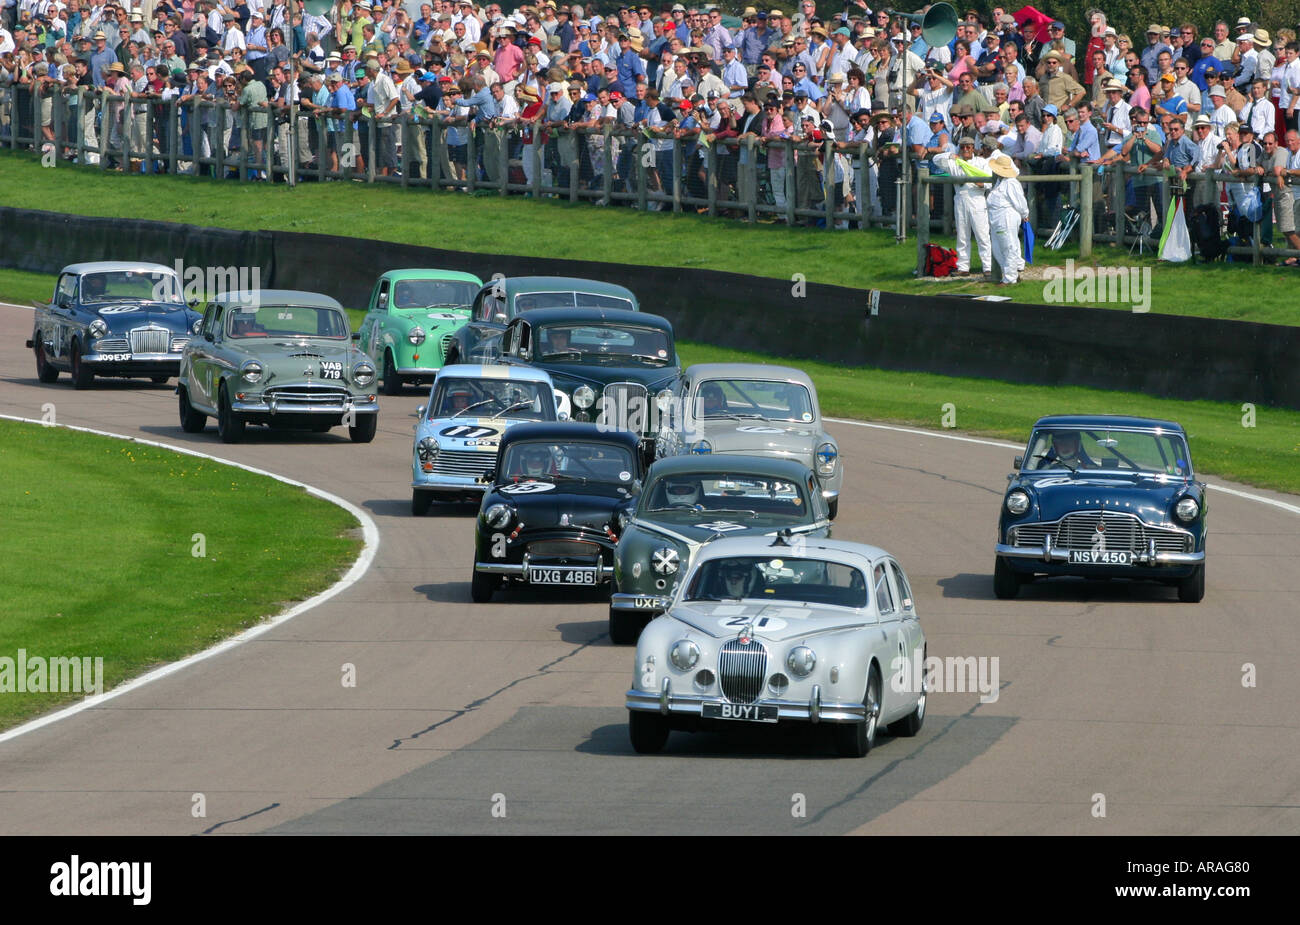 St Marys Trophy Rennen in Goodwood Revival, Sussex, UK. Stockbild